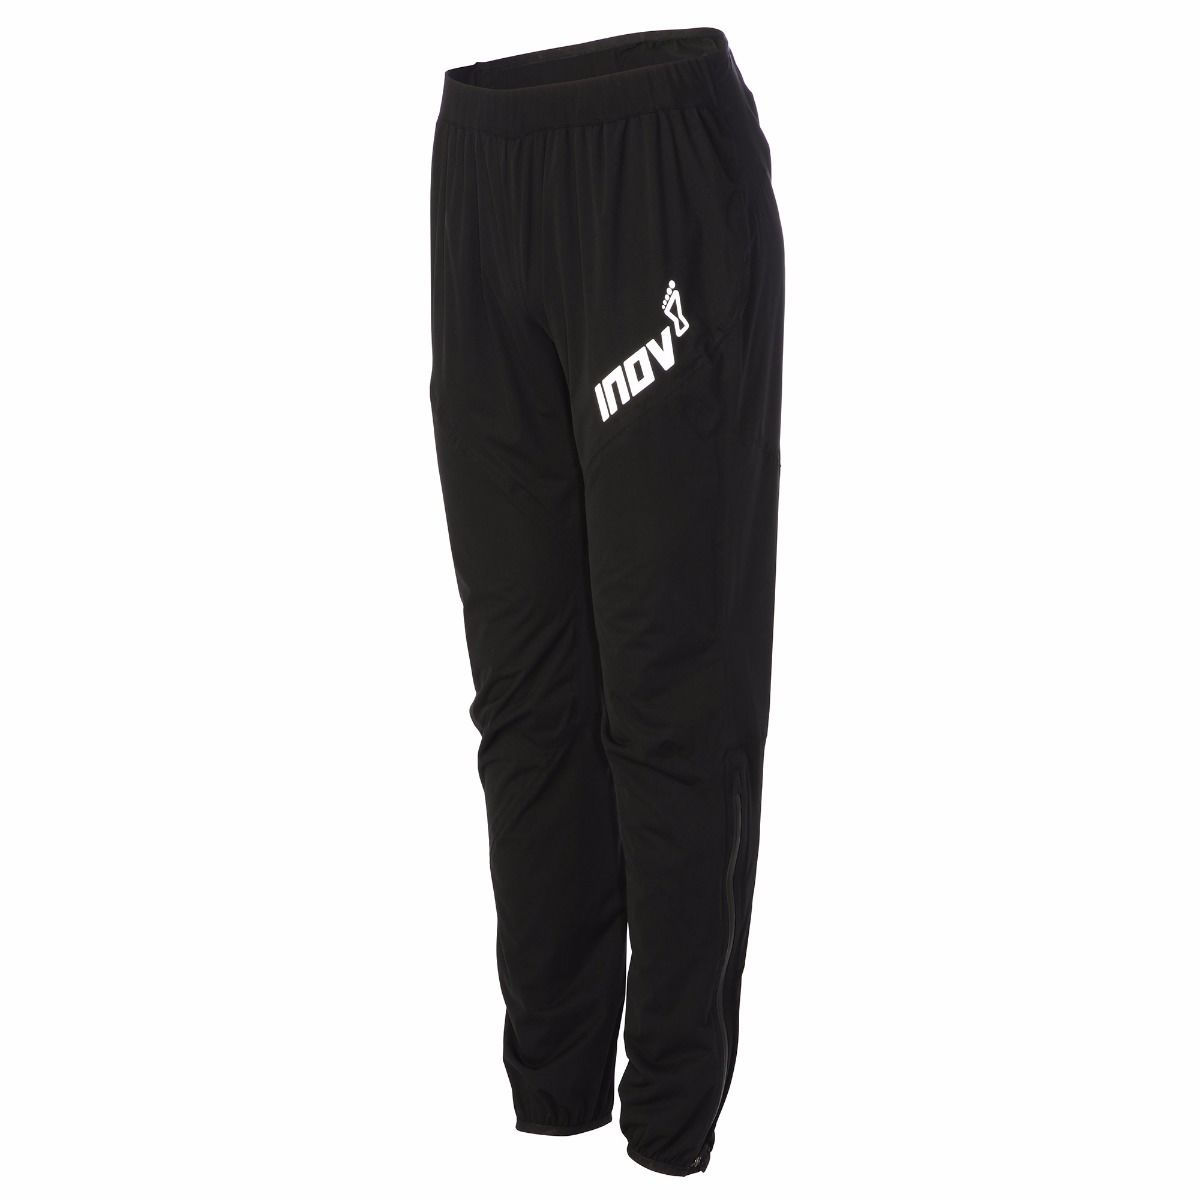 Pantalon Inov-8 AT/C Race - M Black Collants de running